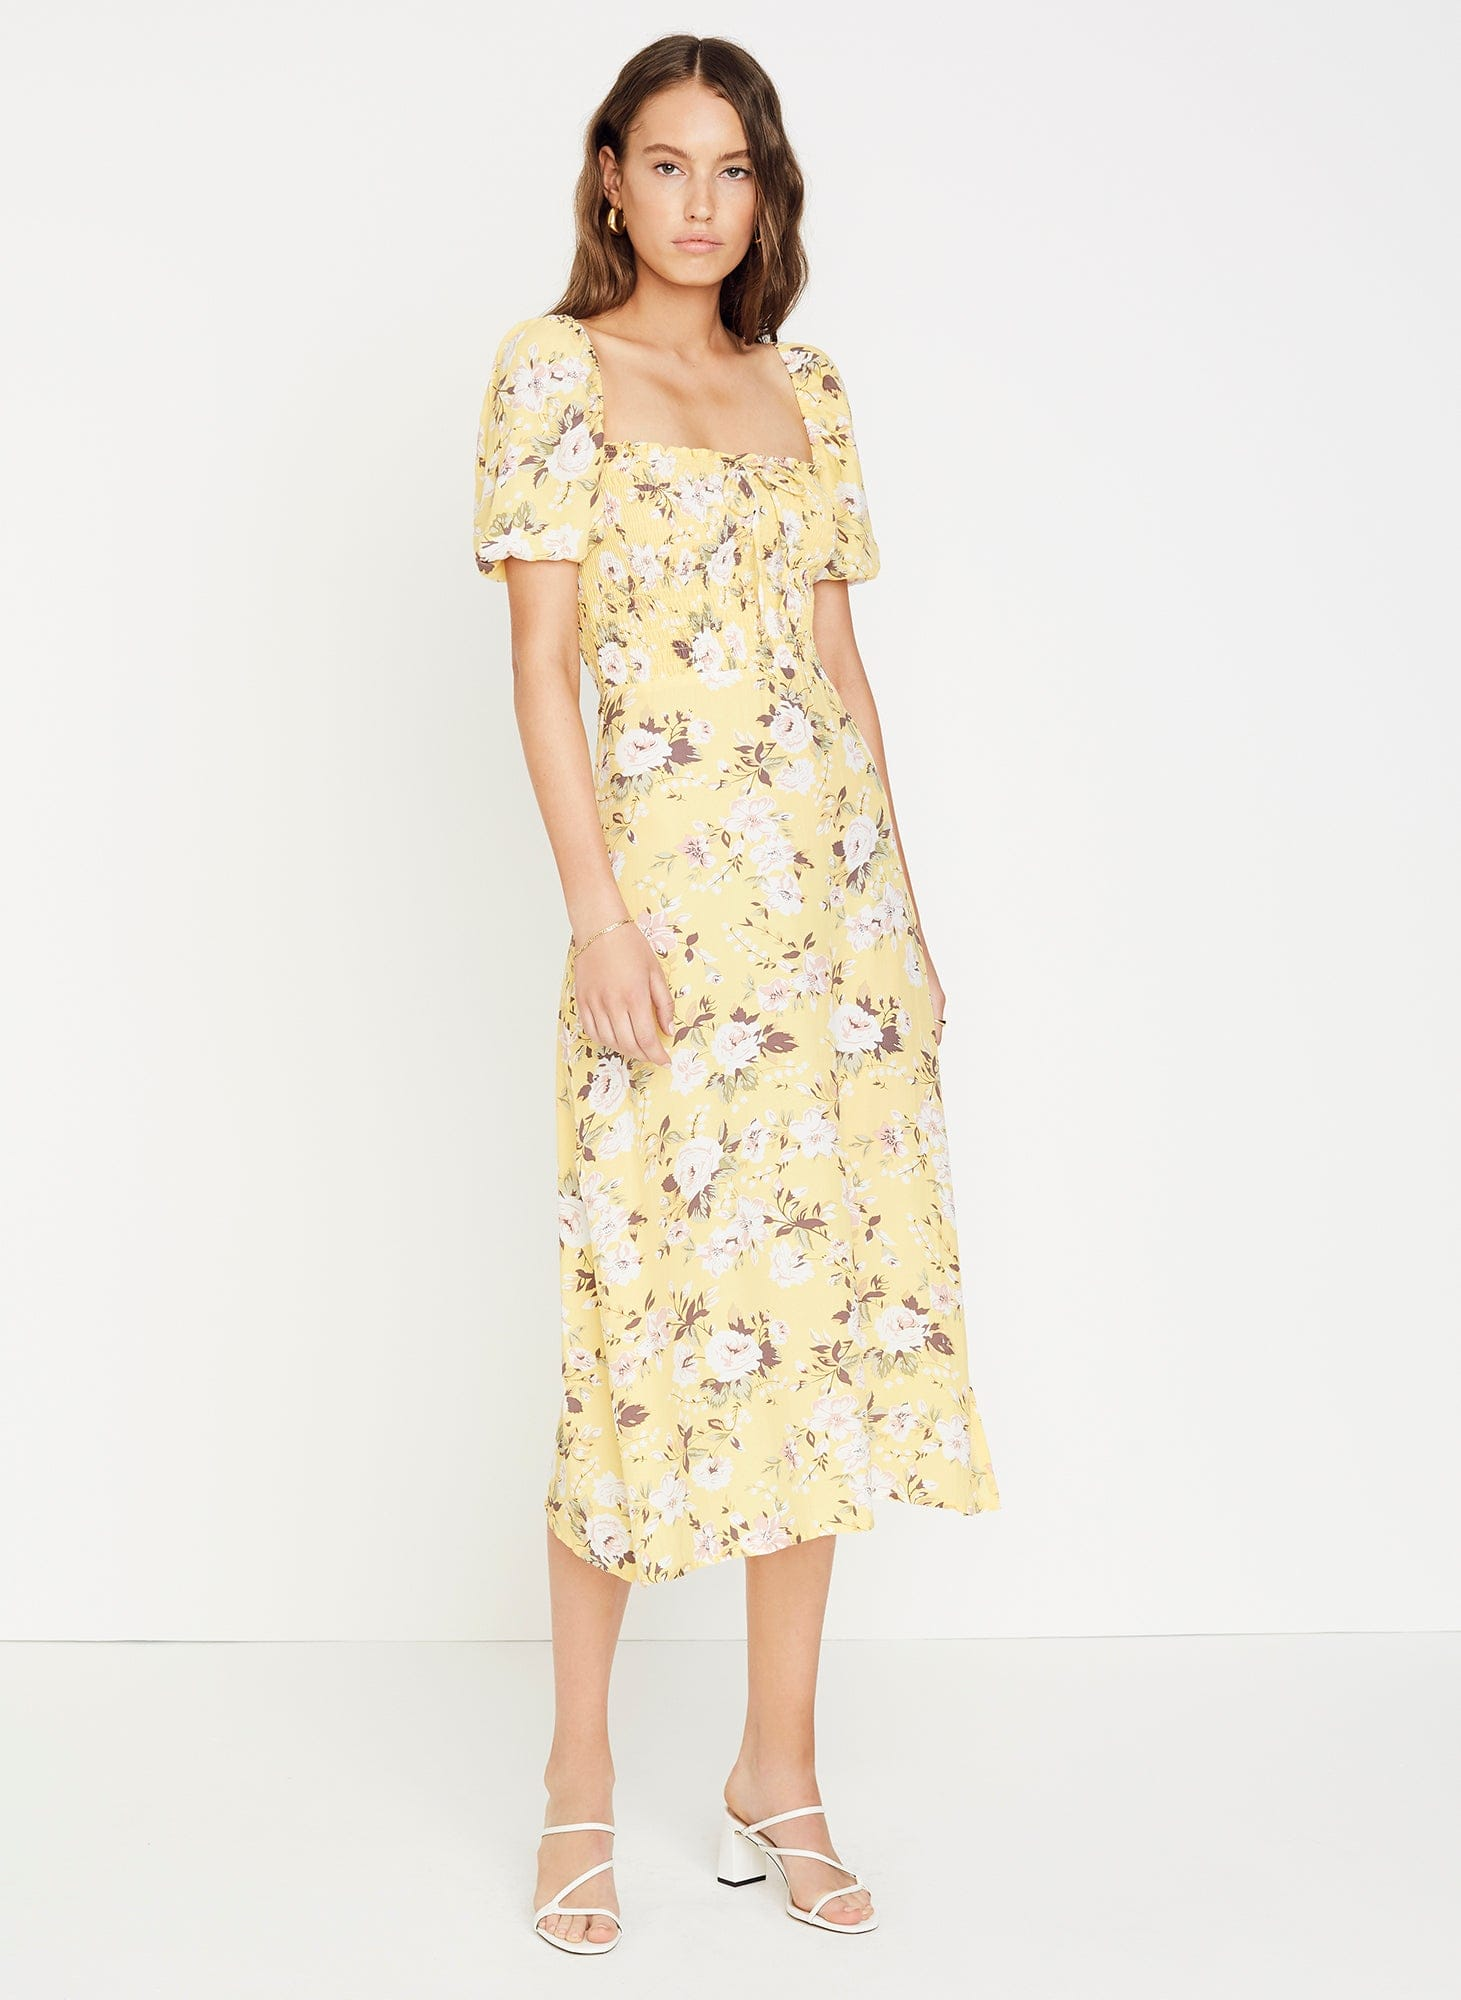 POMELINE FLORAL PRINT - JASMIN YELLOW - MAJORELLE MIDI DRESS